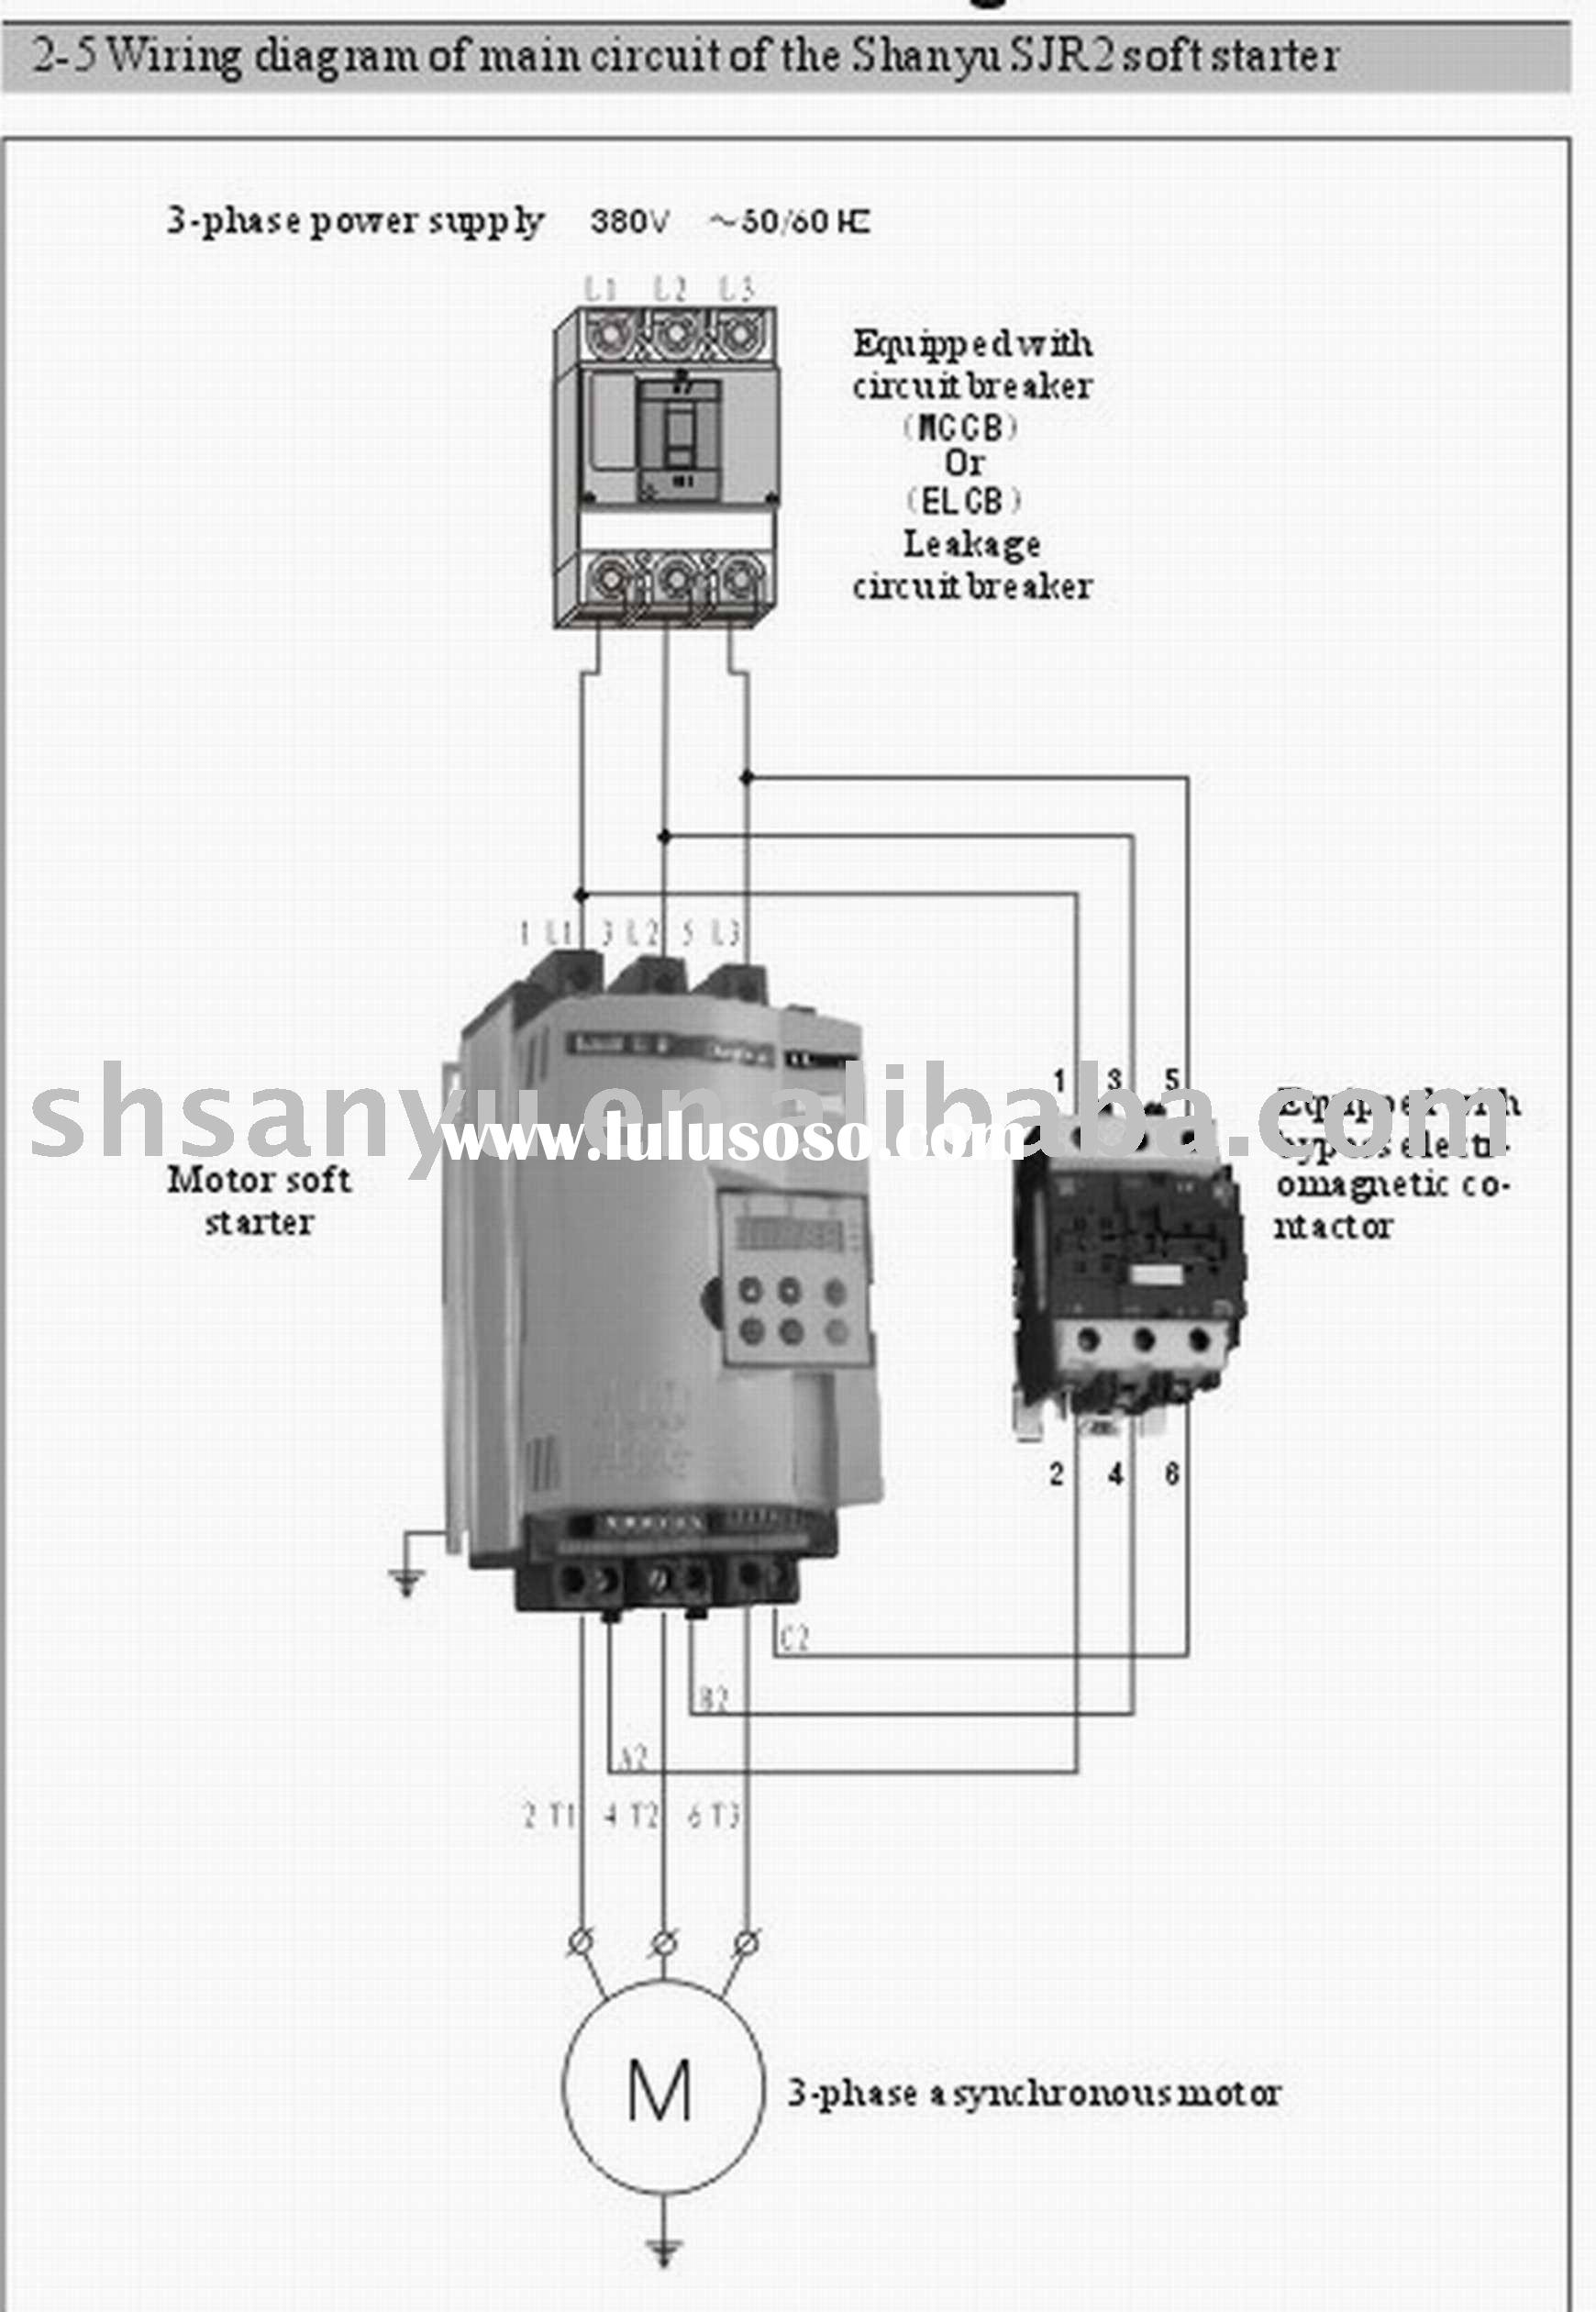 doerr lr22132 wiring diagram get free image about wiring diagram